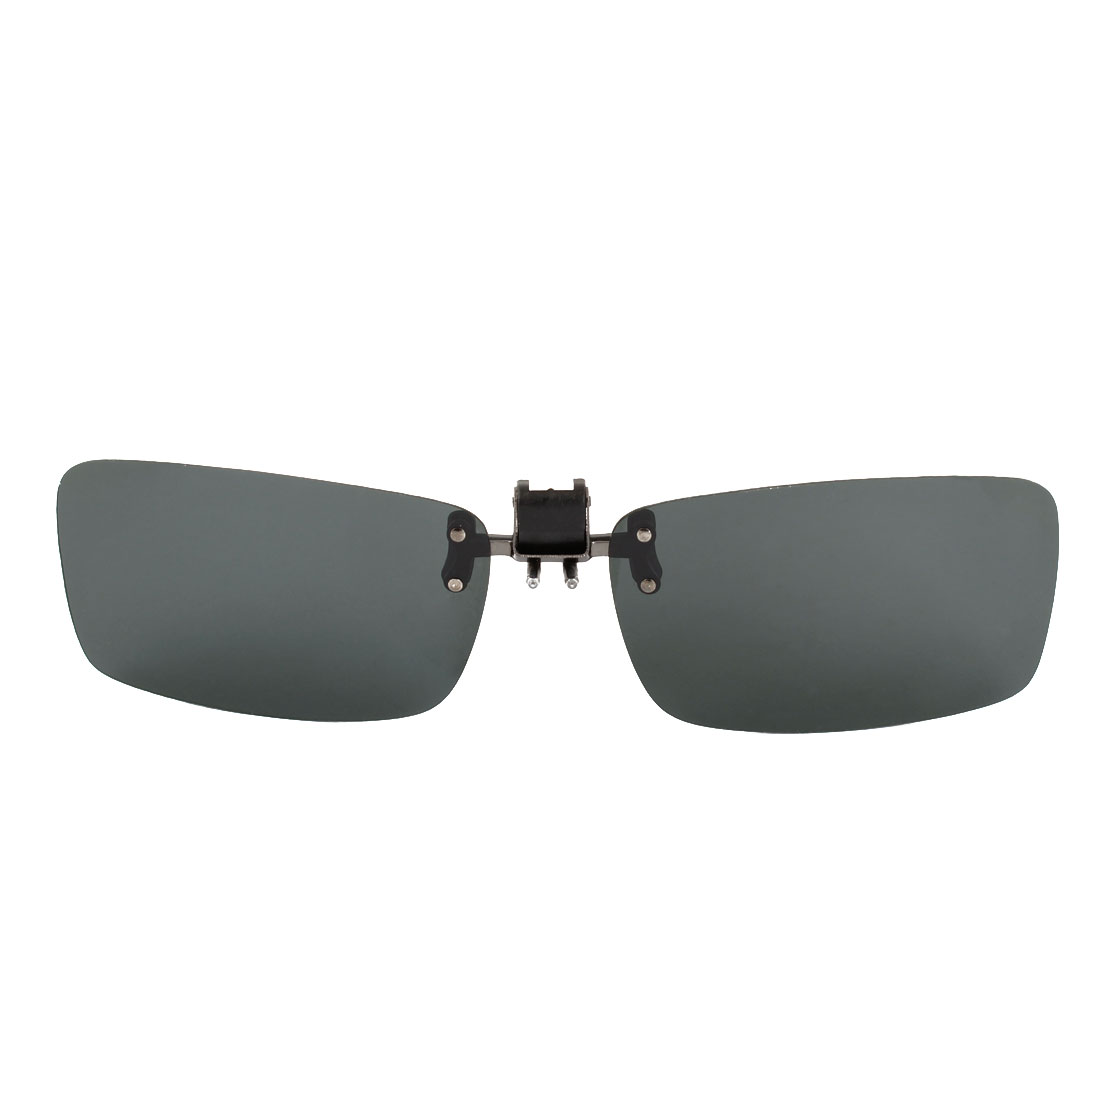 Gray RectangleUnisex Rectangle Lens Flip Up Sports Clip On Polarized Sunglasses Gray 2.3 Inch Long